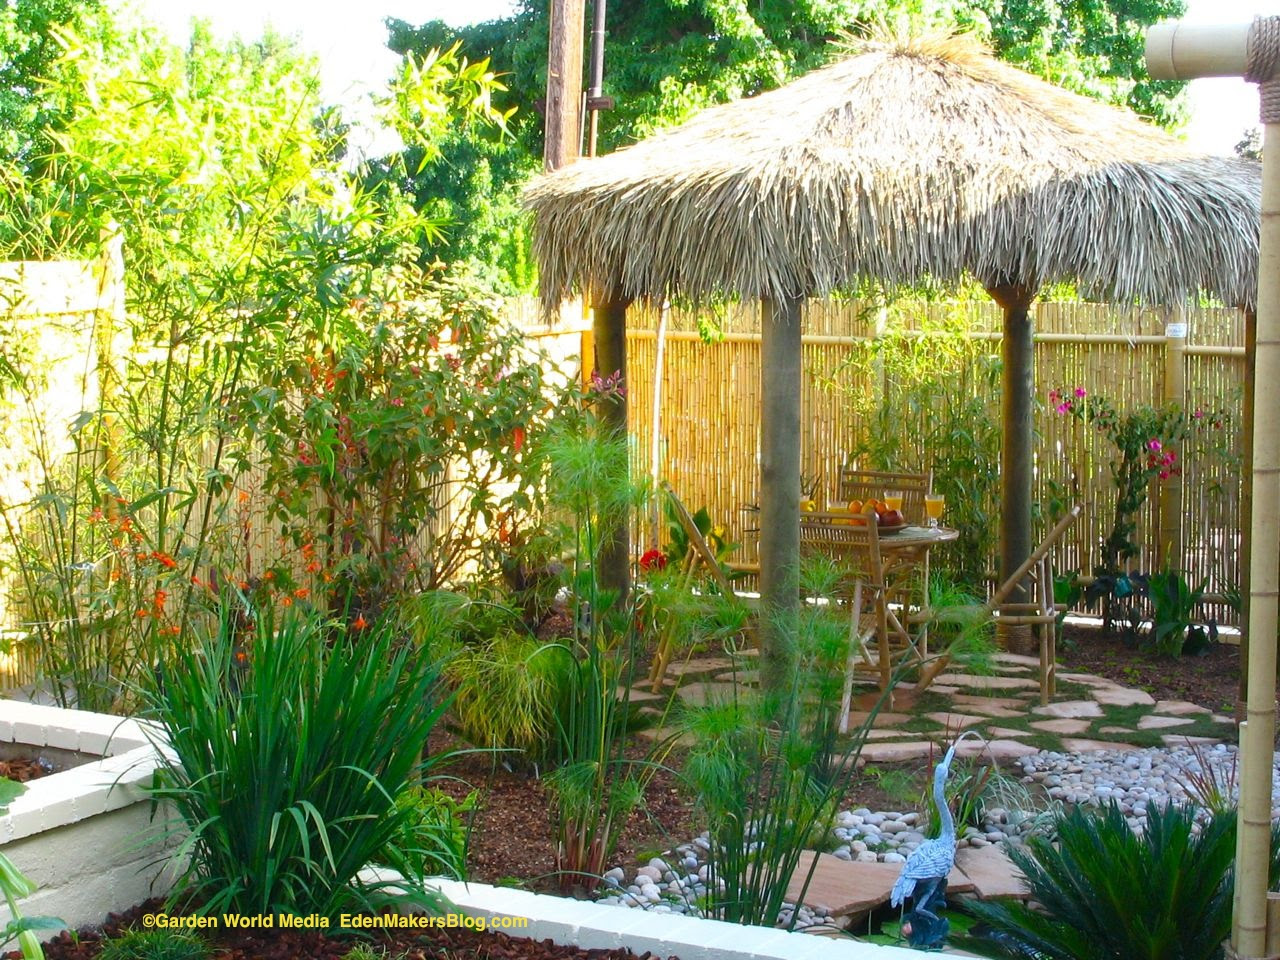 Backyard Landscaping Ideas Pictures Free custom landscaping: free landscaping designs using rocks in the